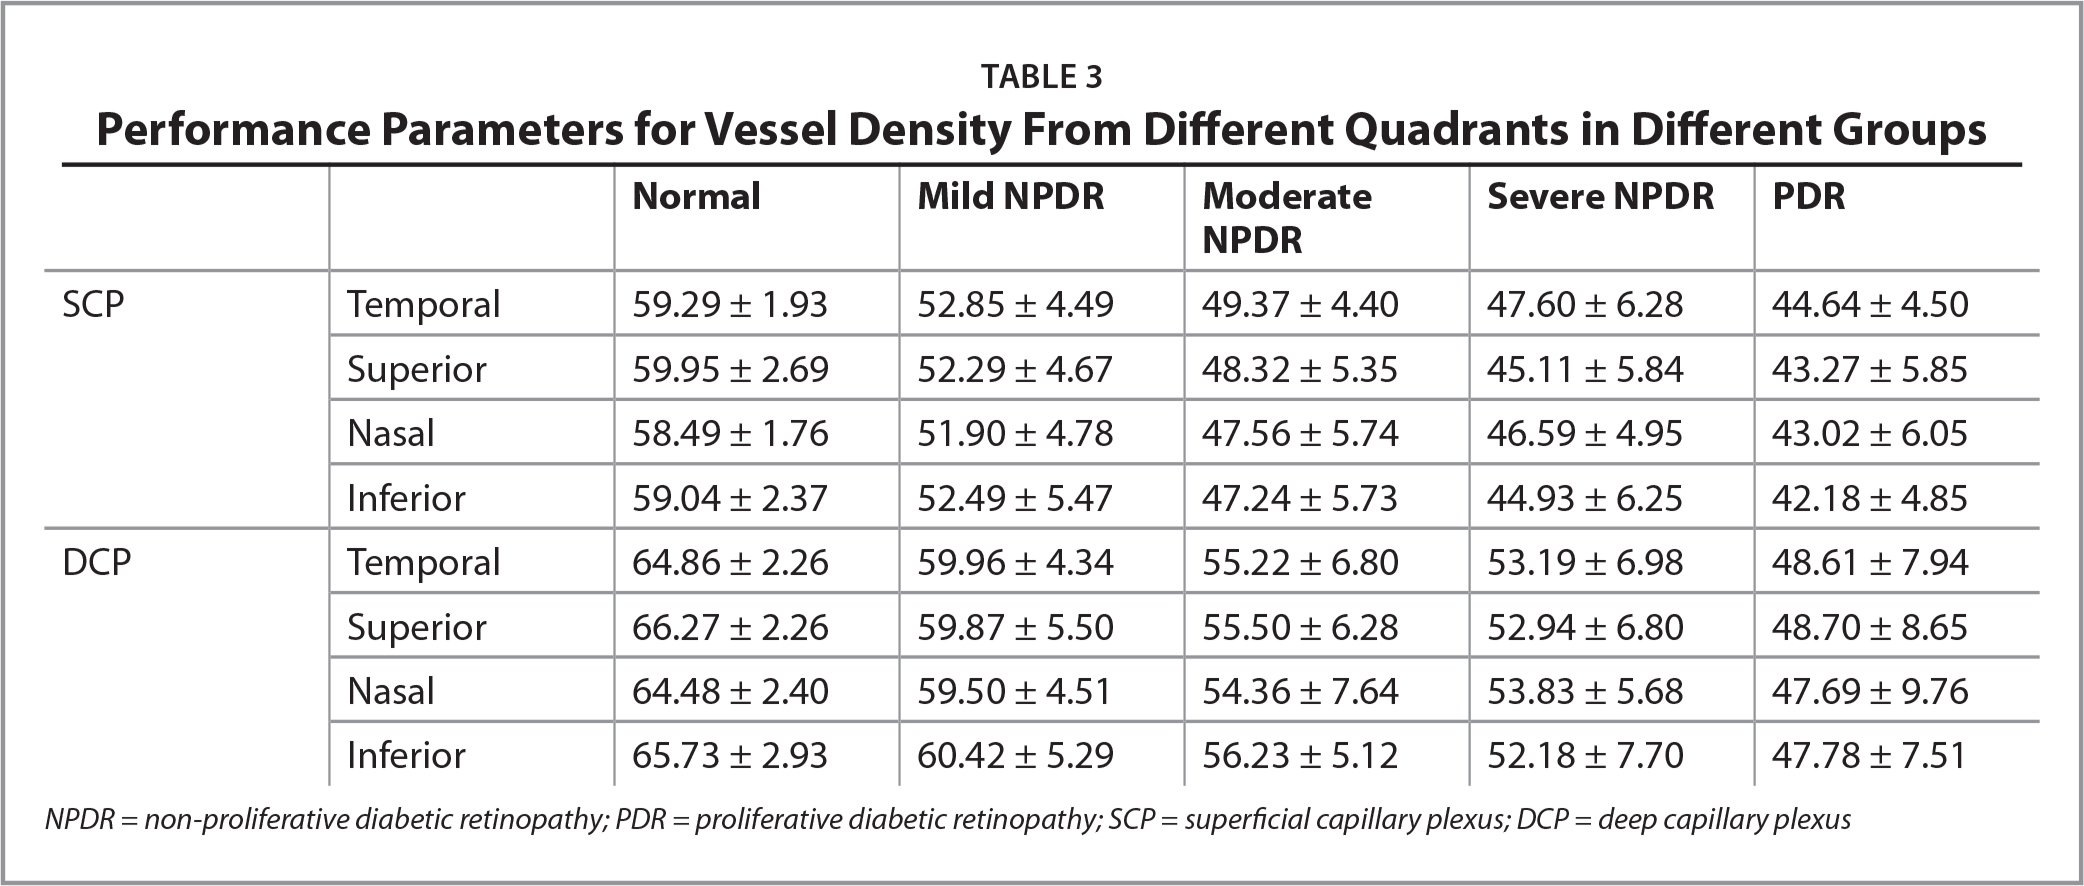 Performance Parameters for Vessel Density From Different Quadrants in Different Groups